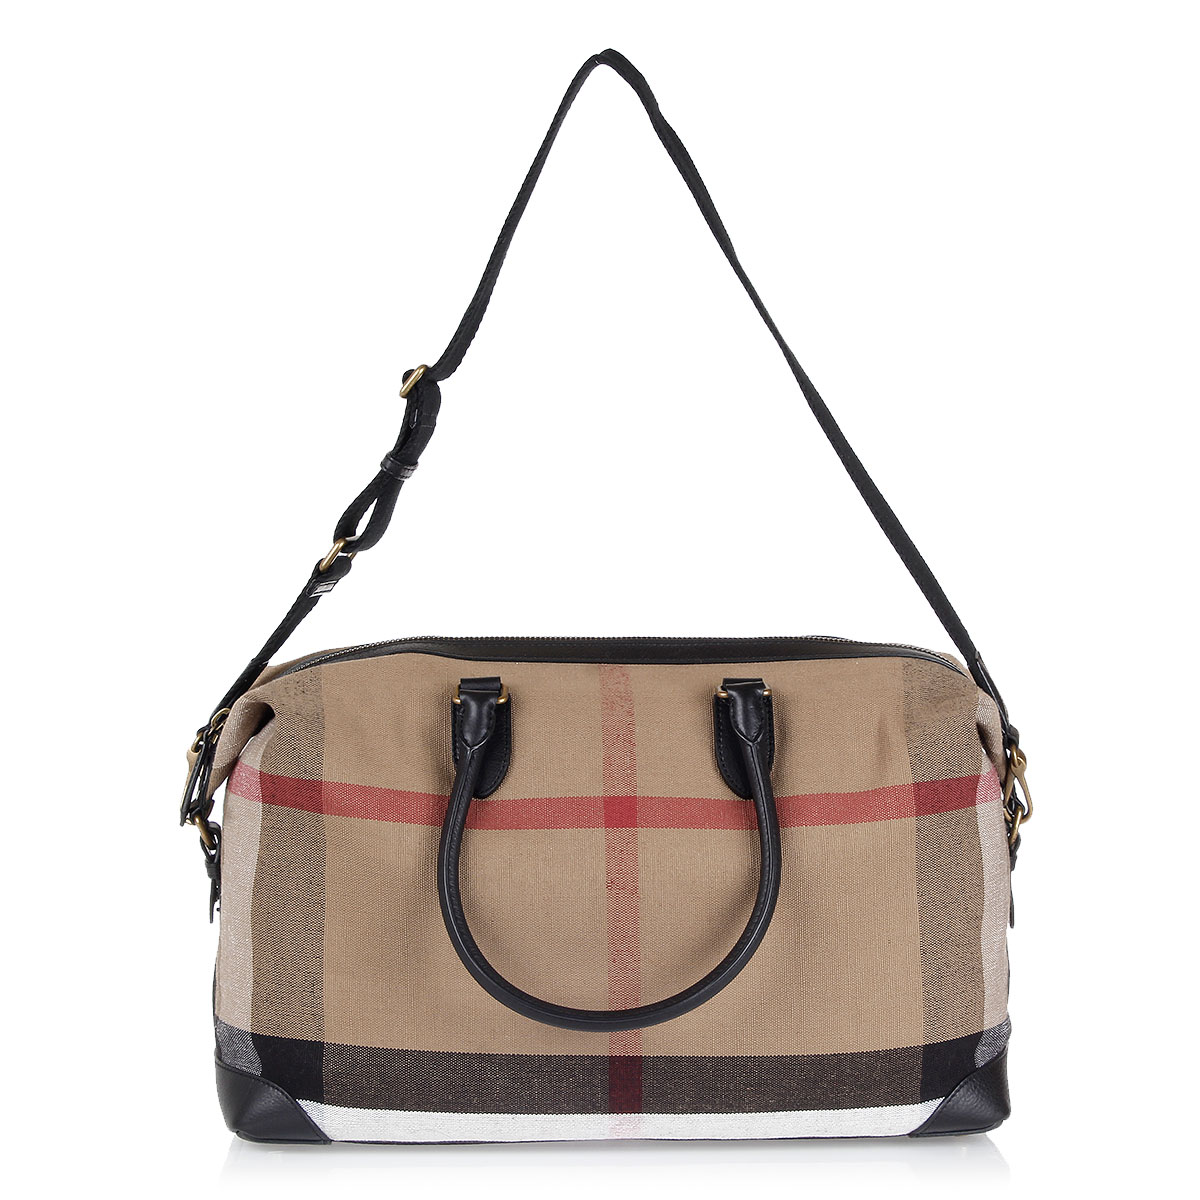 burberry checked kingswood travel bag spence outlet